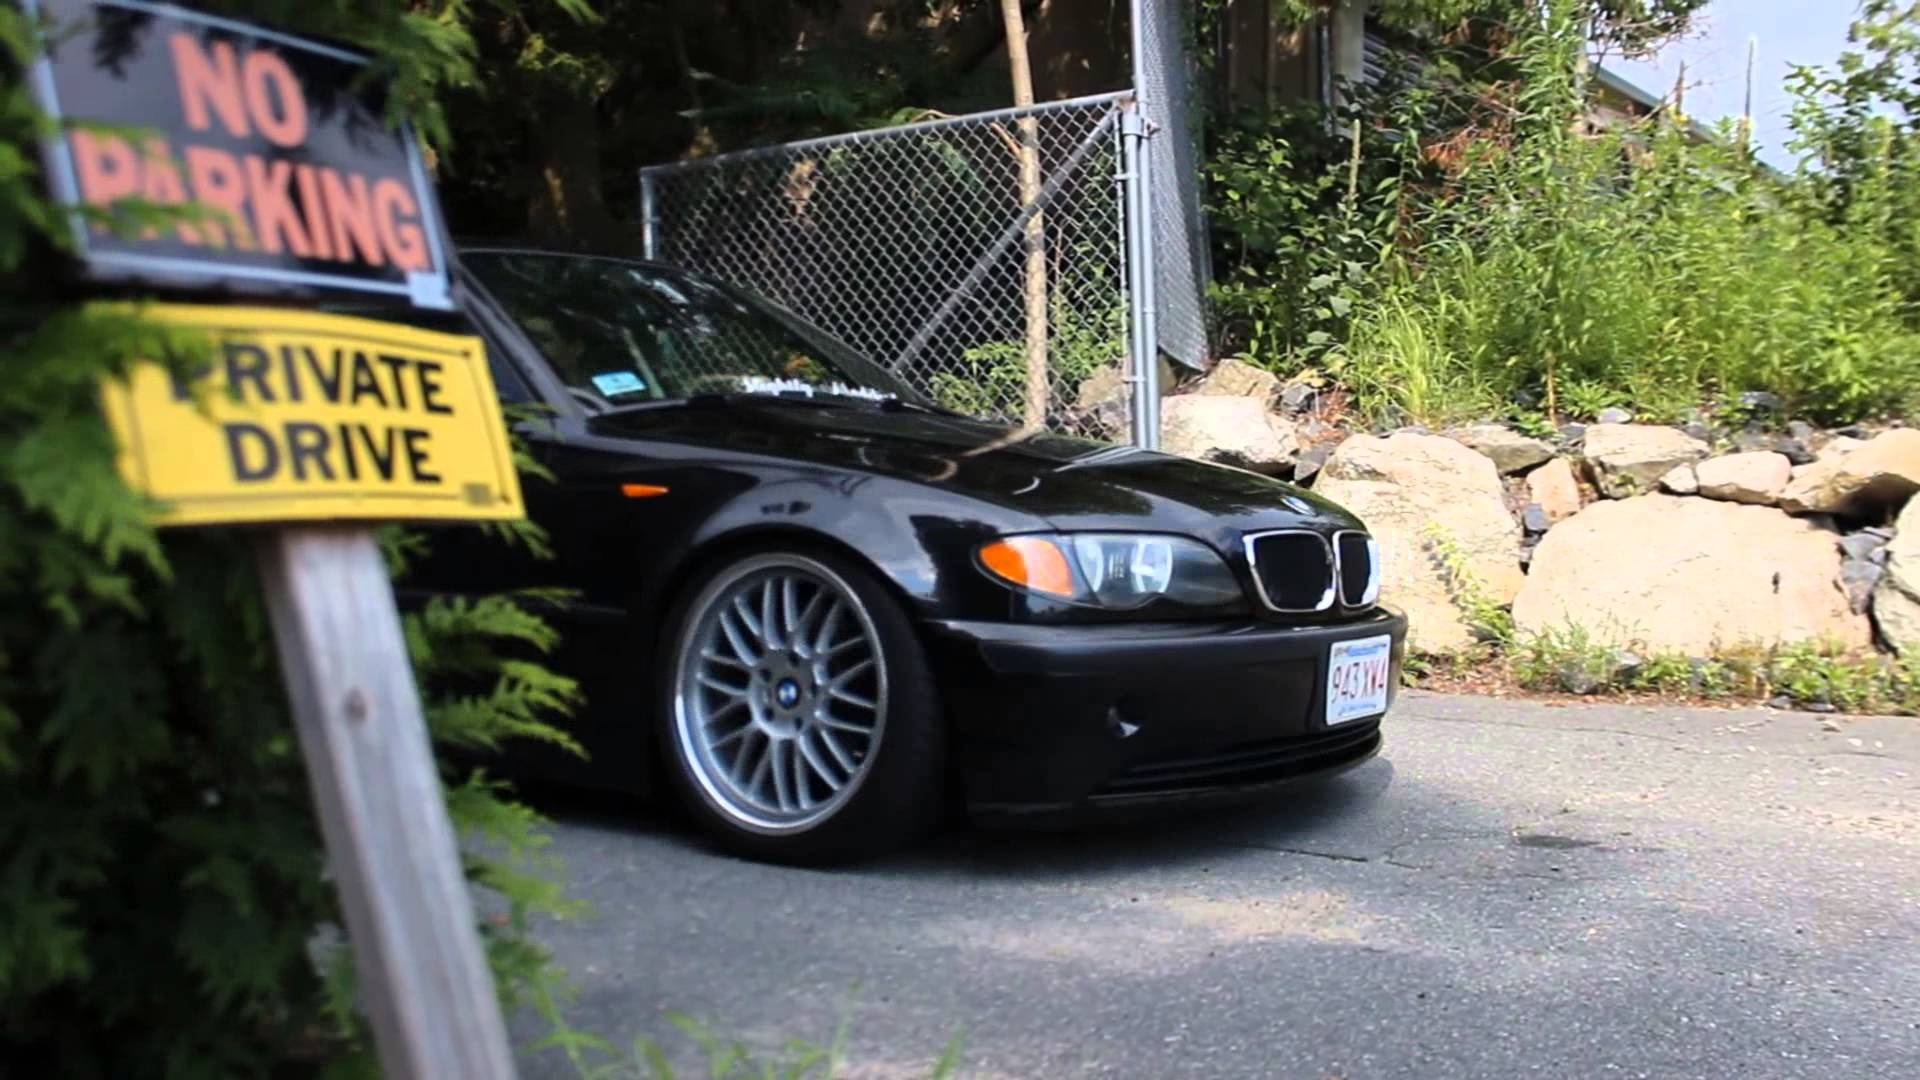 2003 Bmw 325i Modified Beautiful Slightly Modified Bmw E46 Youtube Of Beautiful 2003 Bmw 325i Modified